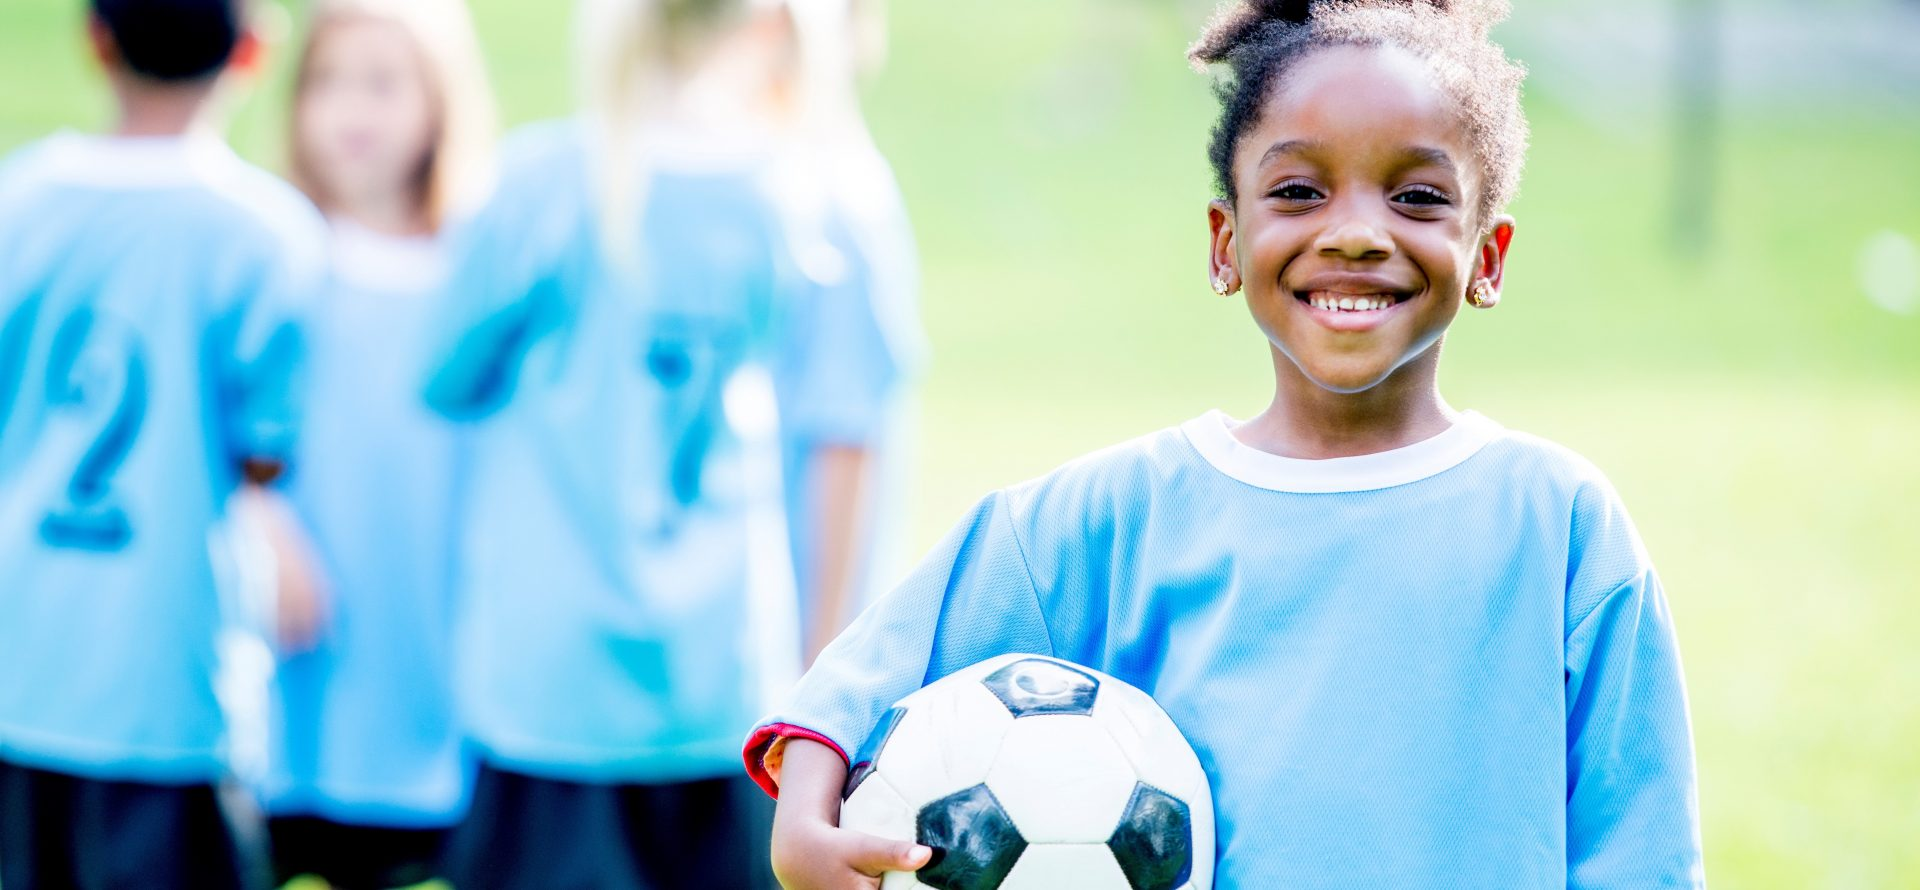 Youth female soccer athlete holding soccer ball on soccer field with team